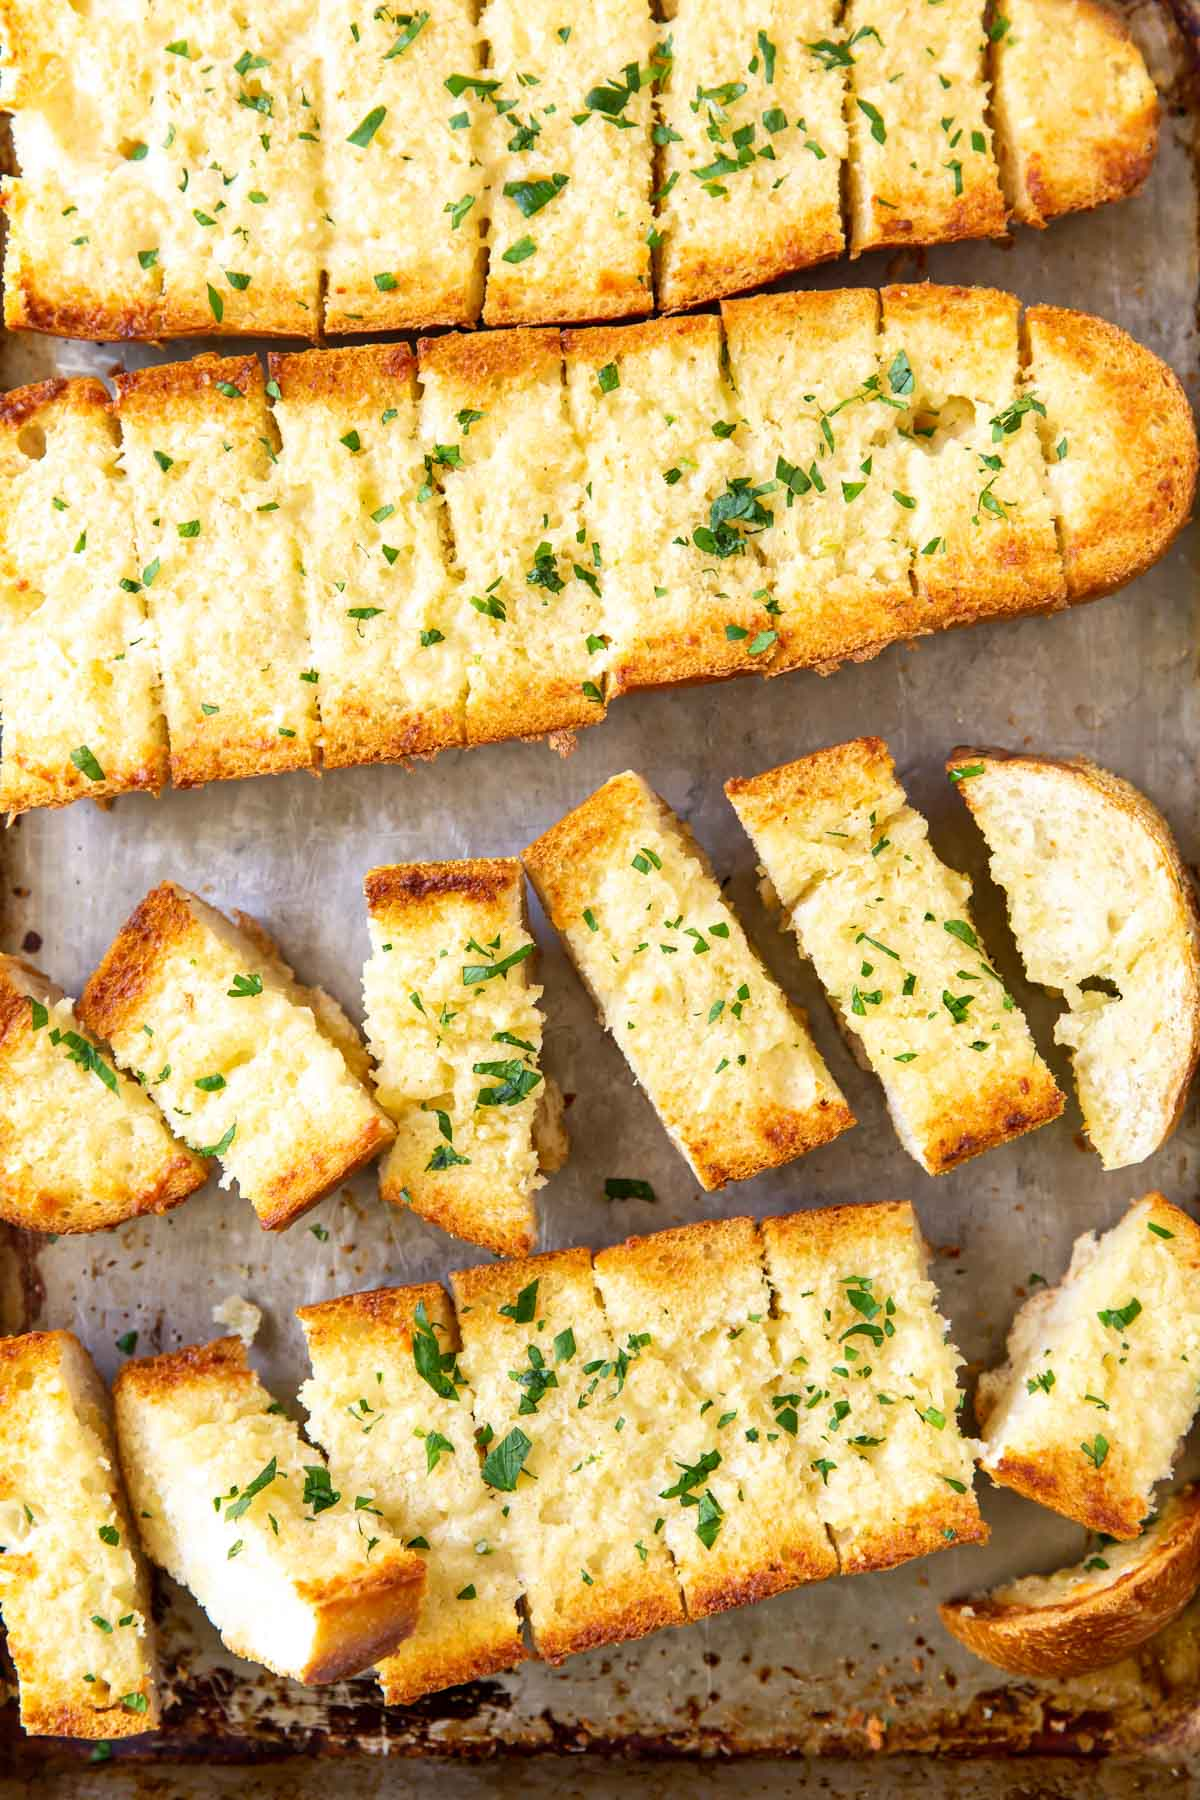 freshly baked garlic bread on baking sheet with some pieces separated and some together in loaf shape